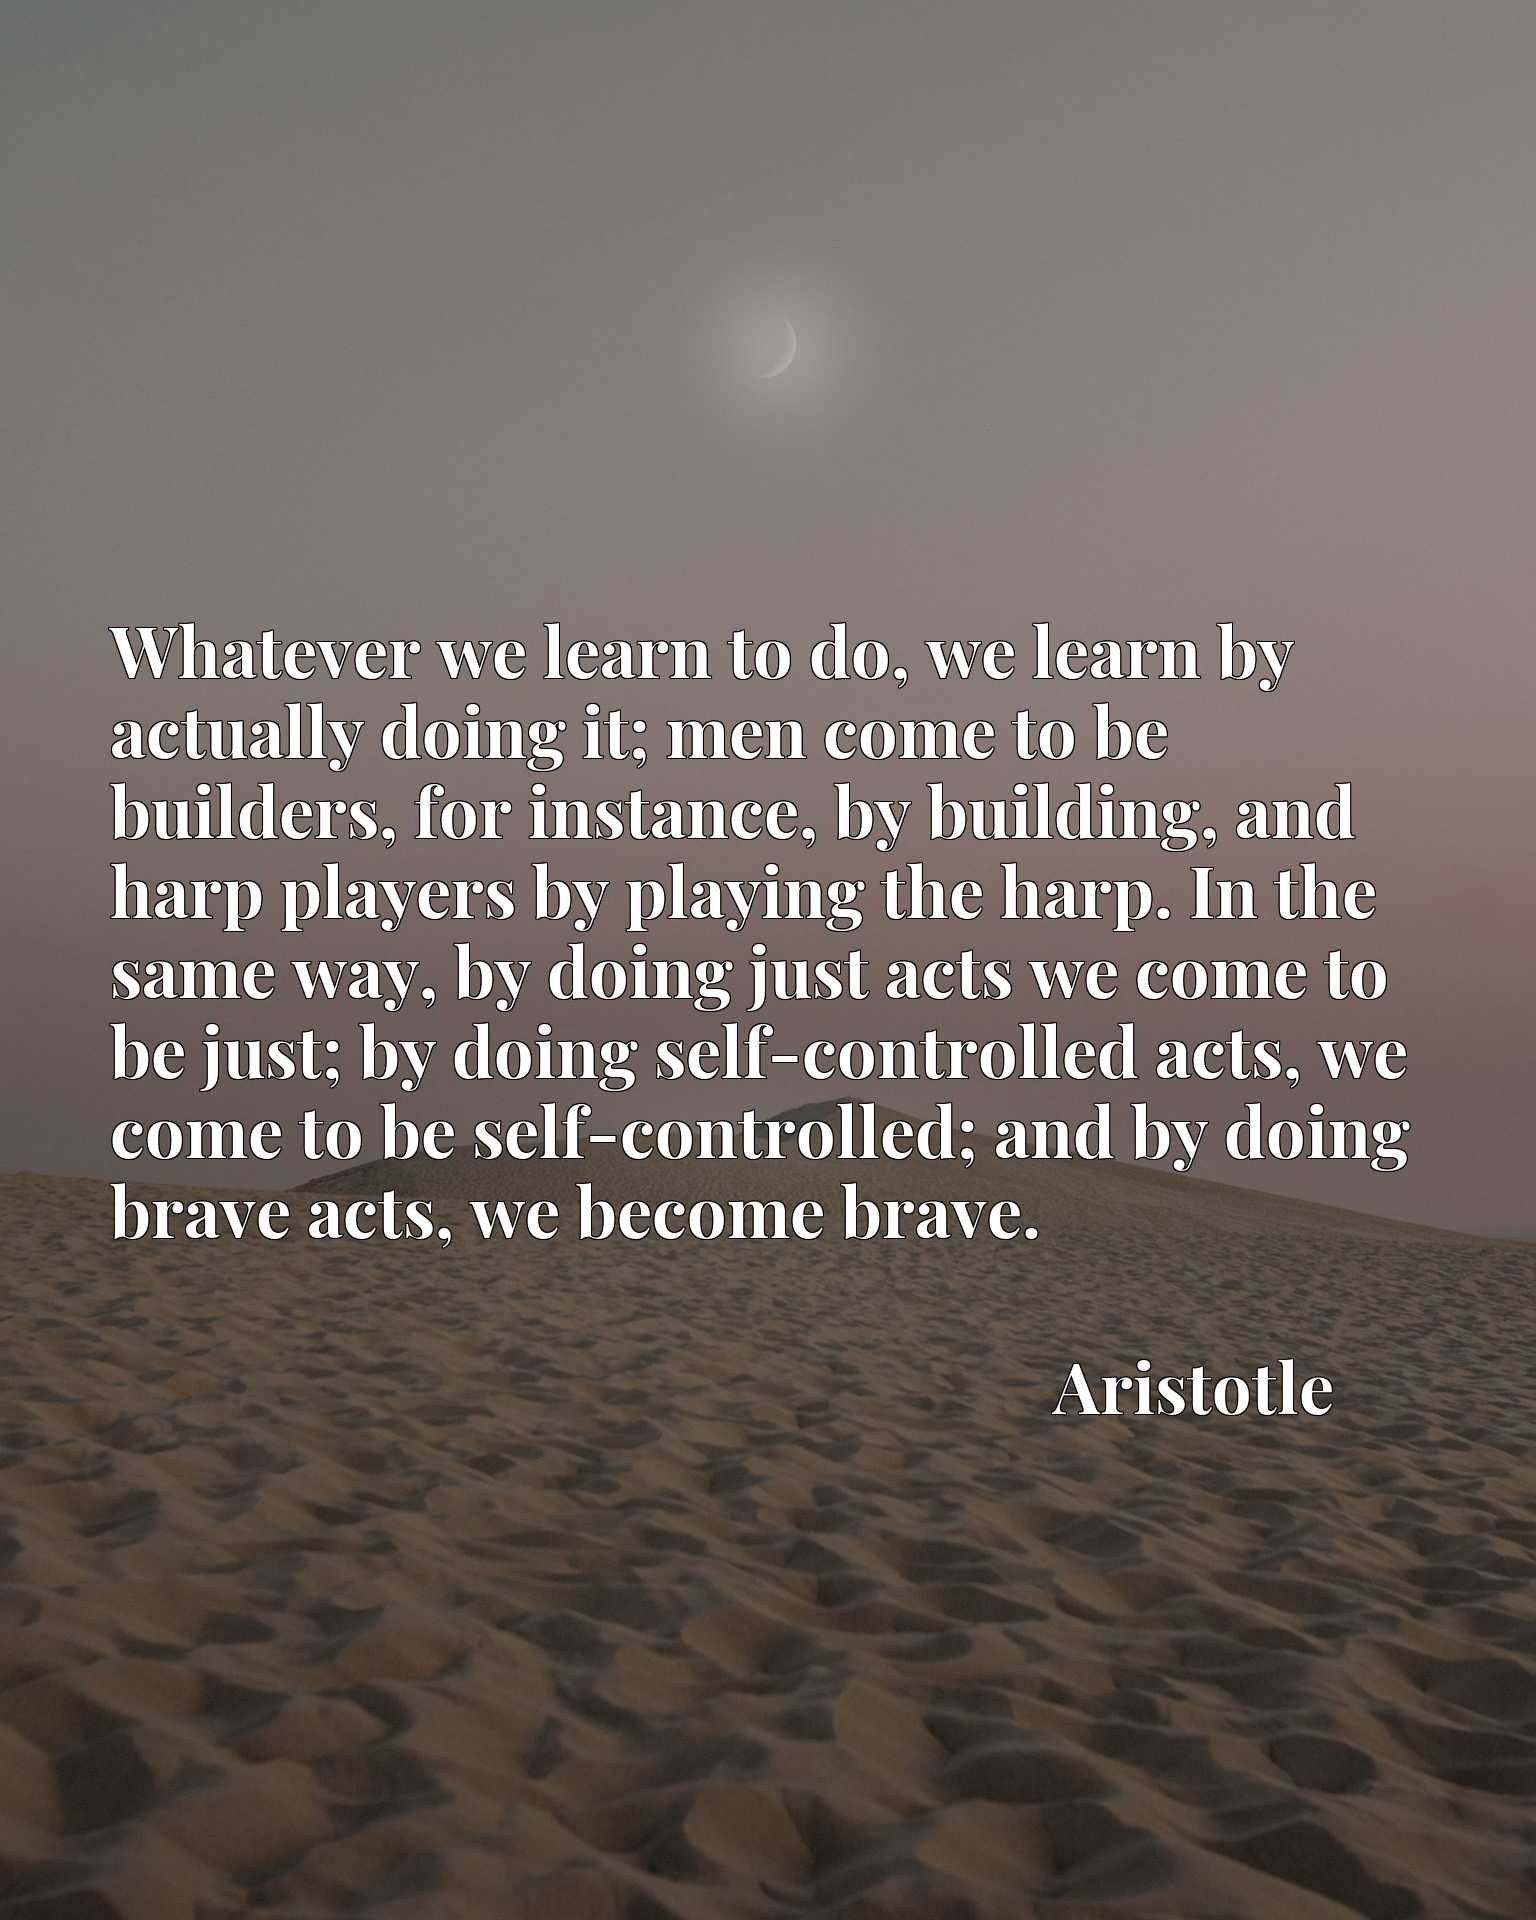 Whatever we learn to do, we learn by actually doing it; men come to be builders, for instance, by building, and harp players by playing the harp. In the same way, by doing just acts we come to be just; by doing self-controlled acts, we come to be self-controlled; and by doing brave acts, we become brave.